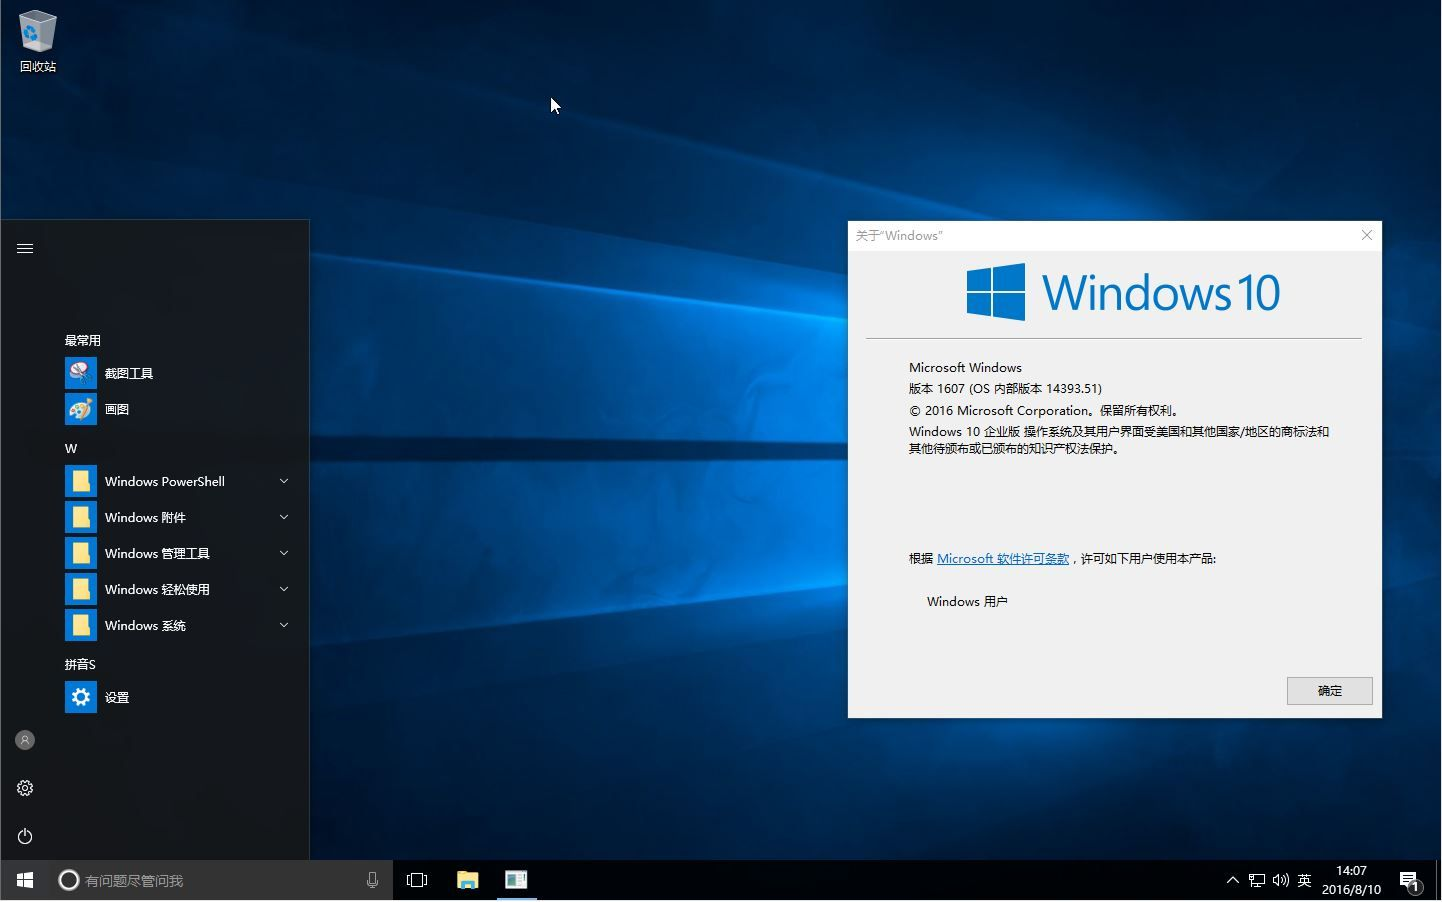 Windows 10 Enterprise 14393.51 x86-x64 zh-CN LITE 01